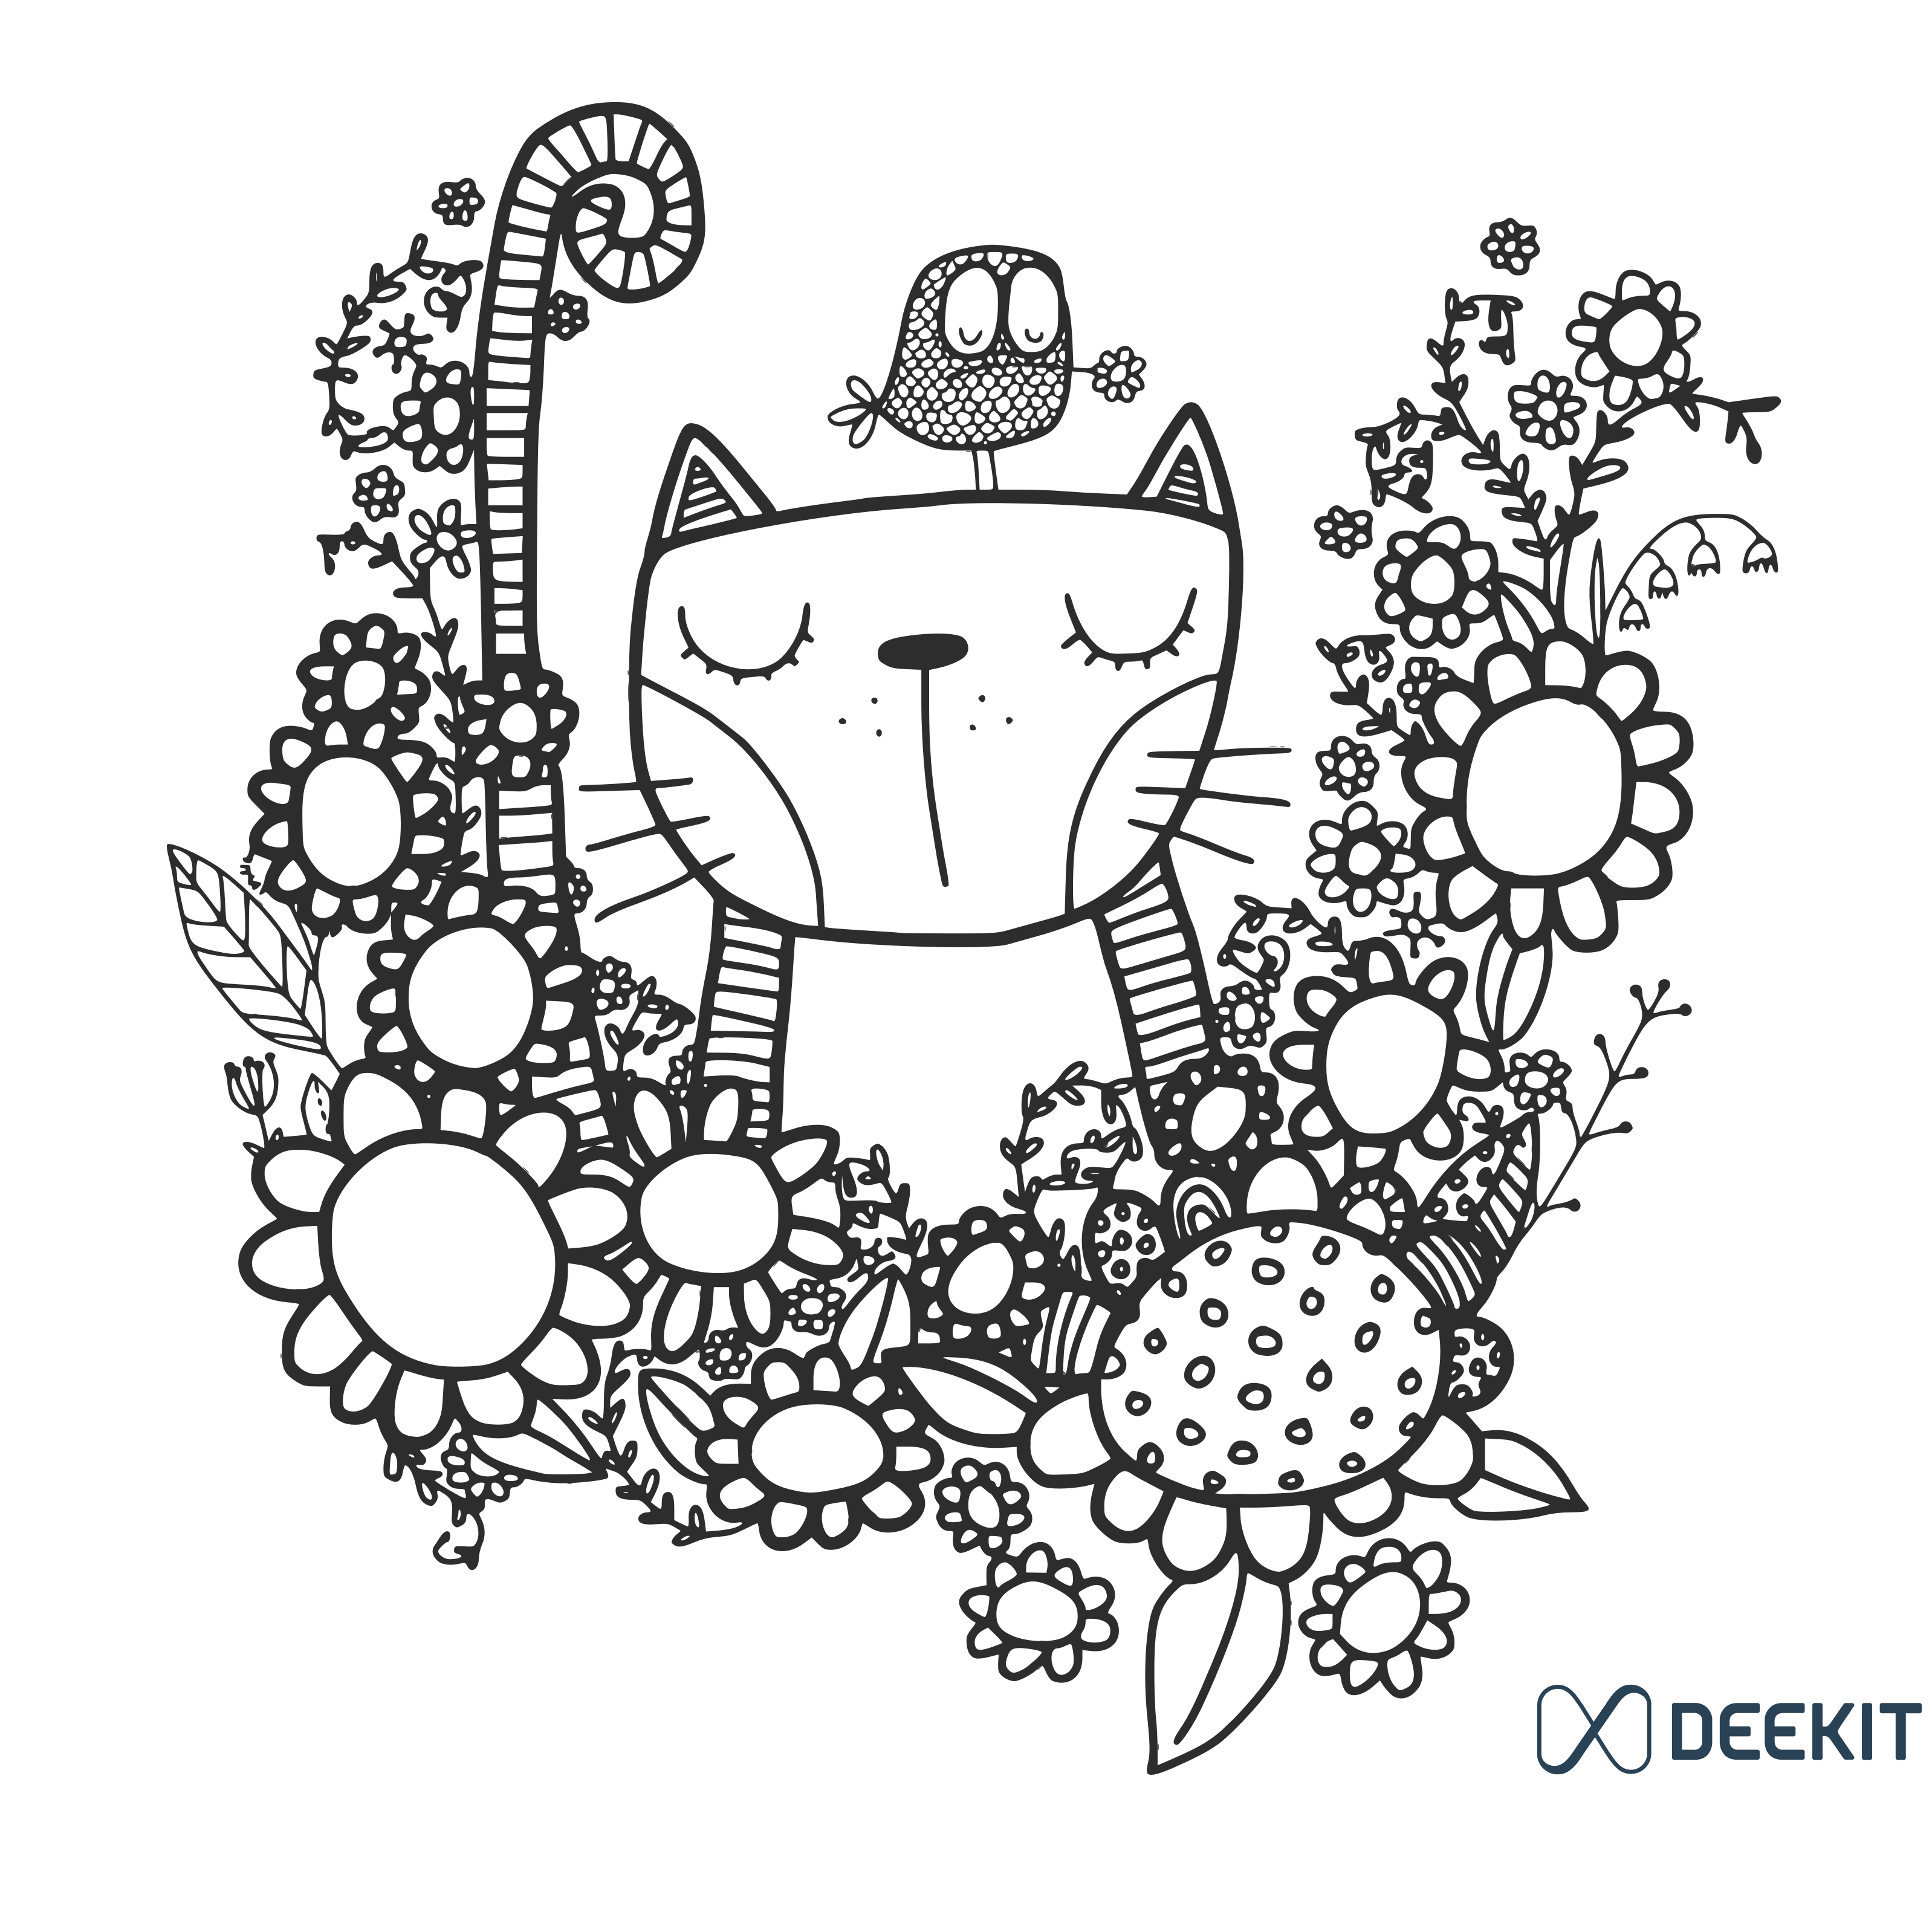 Stunning Free Colouring Template Of A Cat And The Bird Colouring